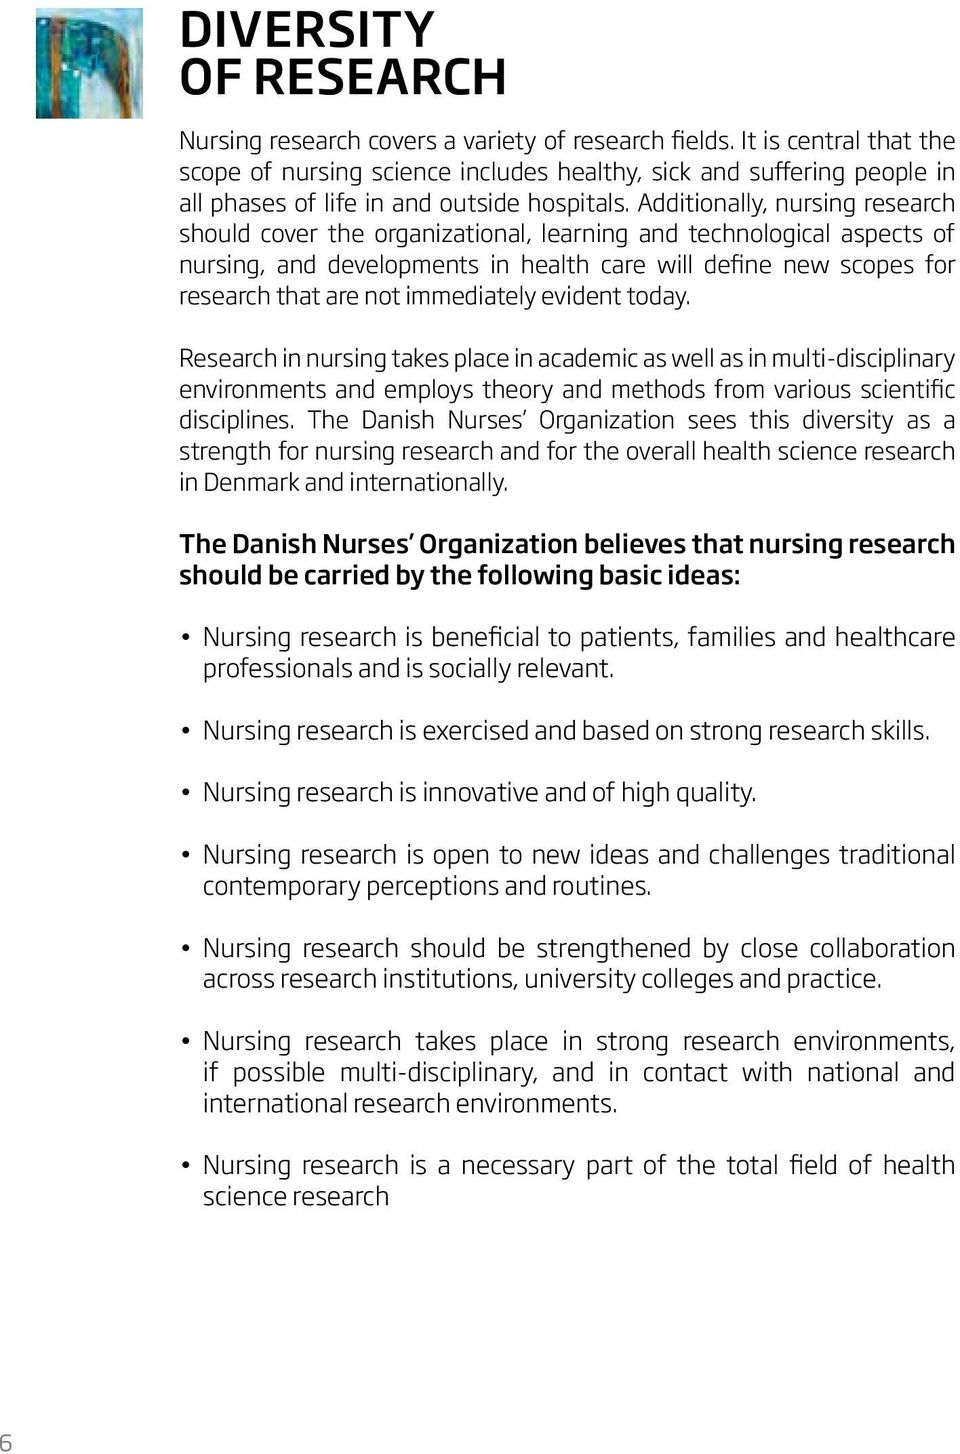 Additionally, nursing research should cover the organizational, learning and technological aspects of nursing, and developments in health care will define new scopes for research that are not